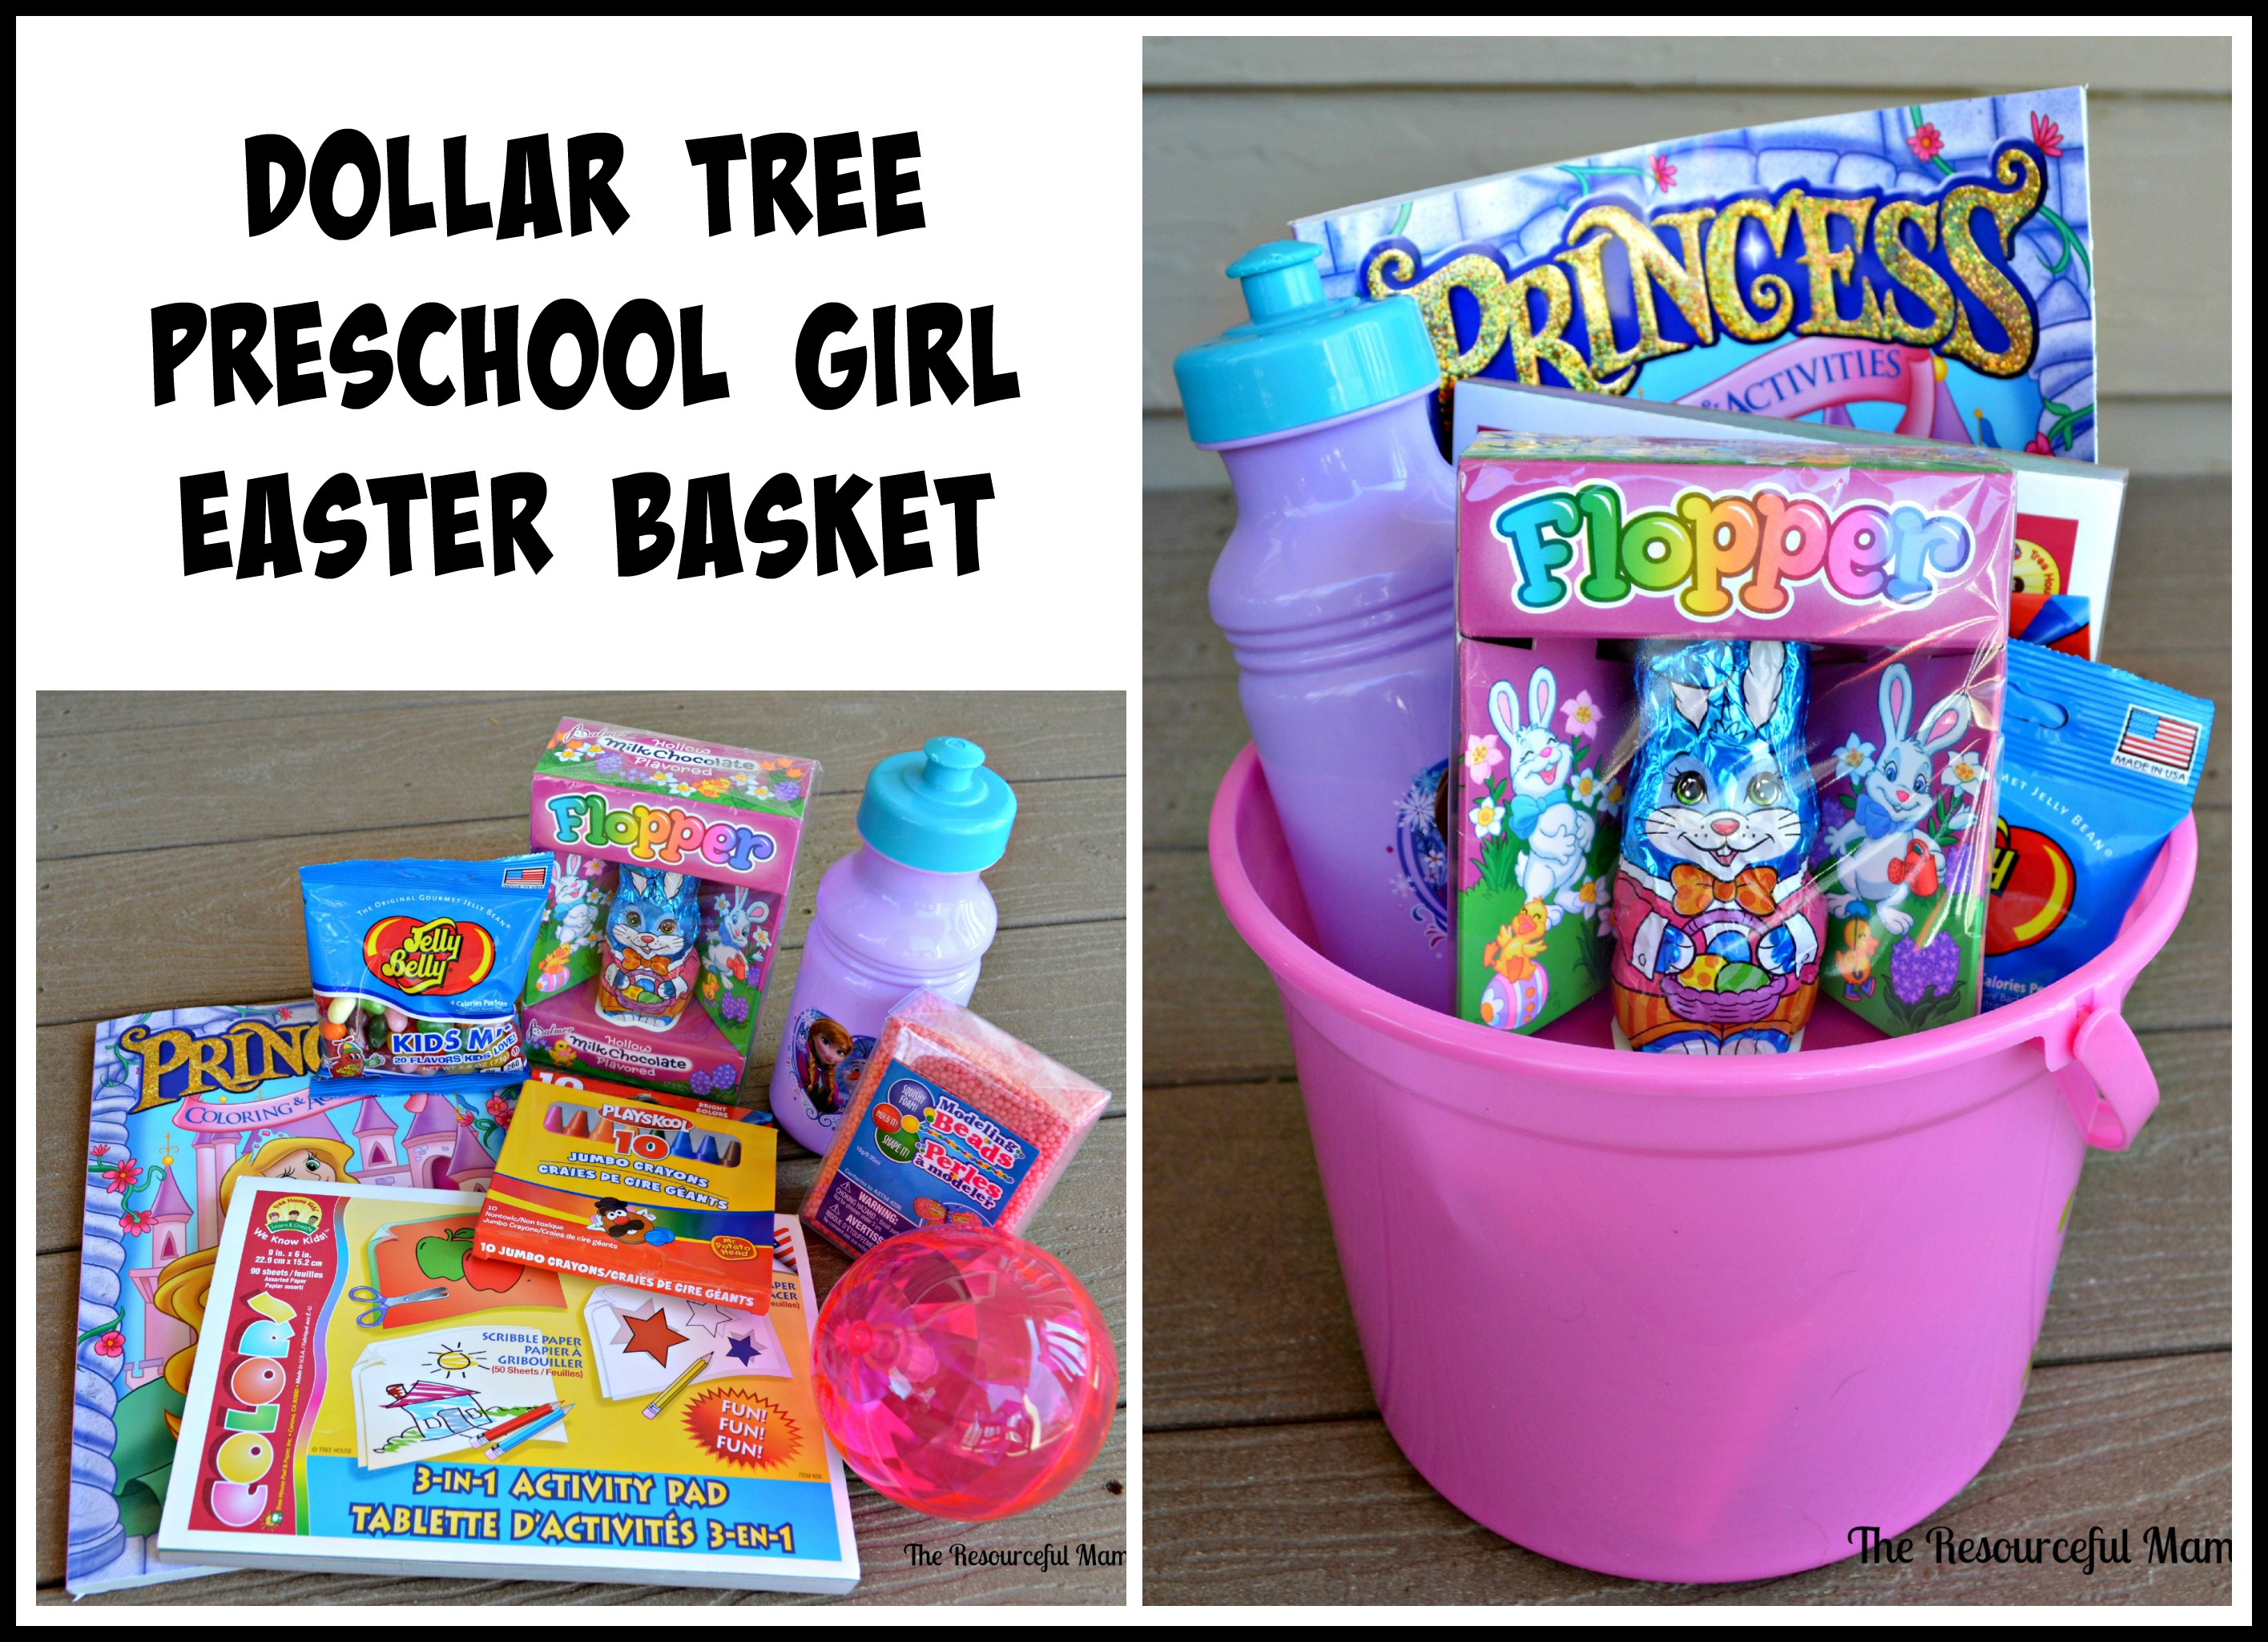 Dollar tree easter baskets the resourceful mama dollar tree easter baskets negle Choice Image